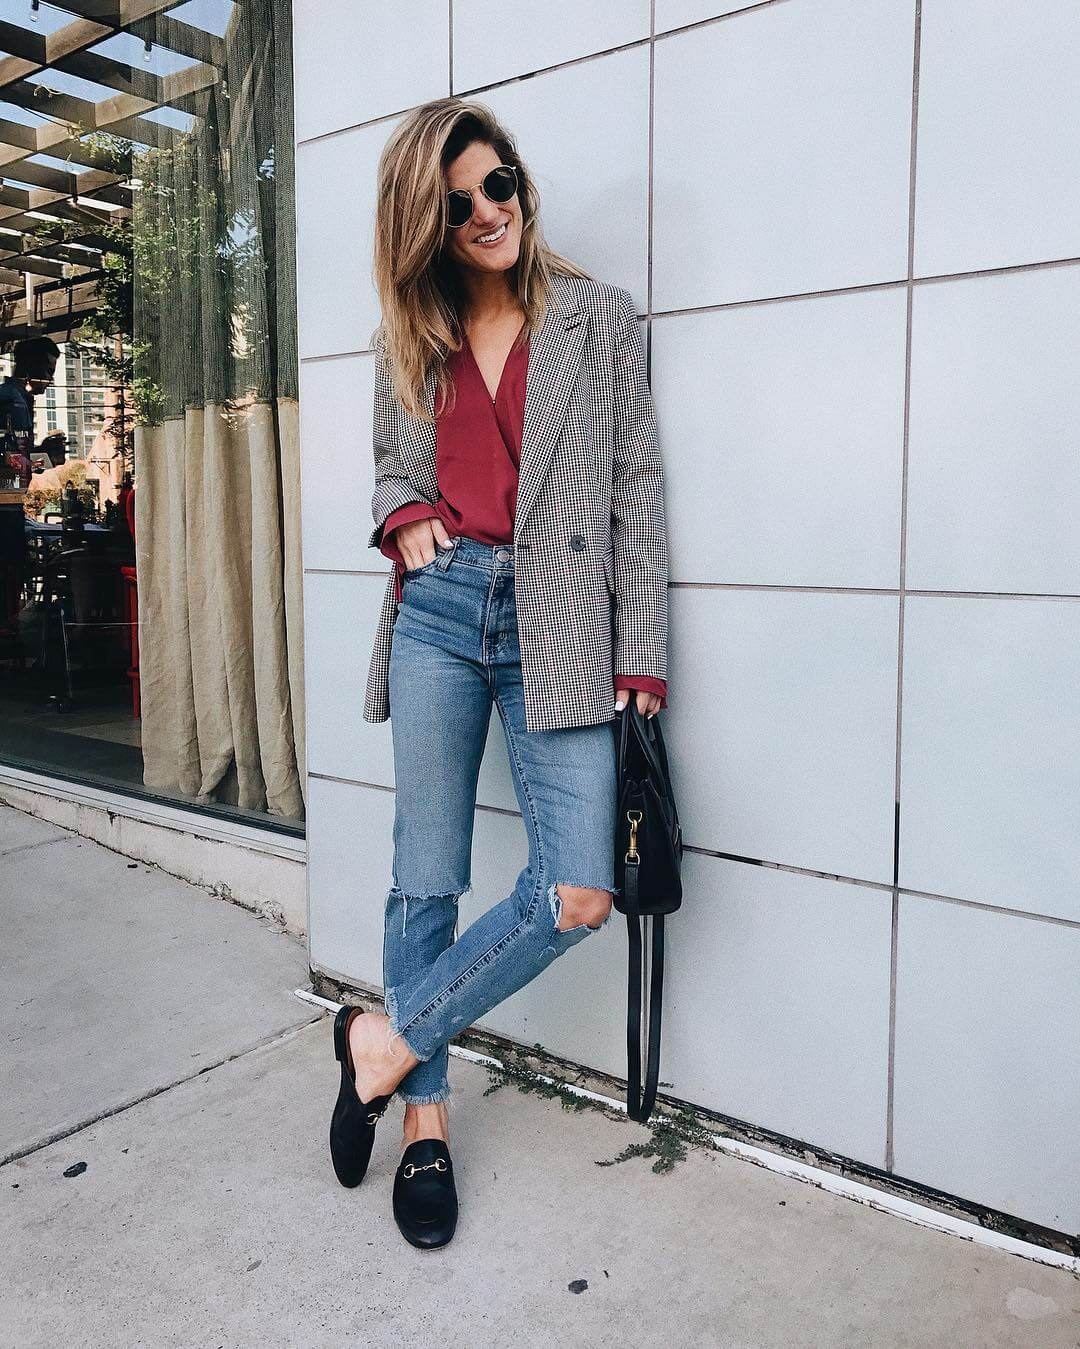 plaid blazer, burgundy blouse with mom jeans and slides